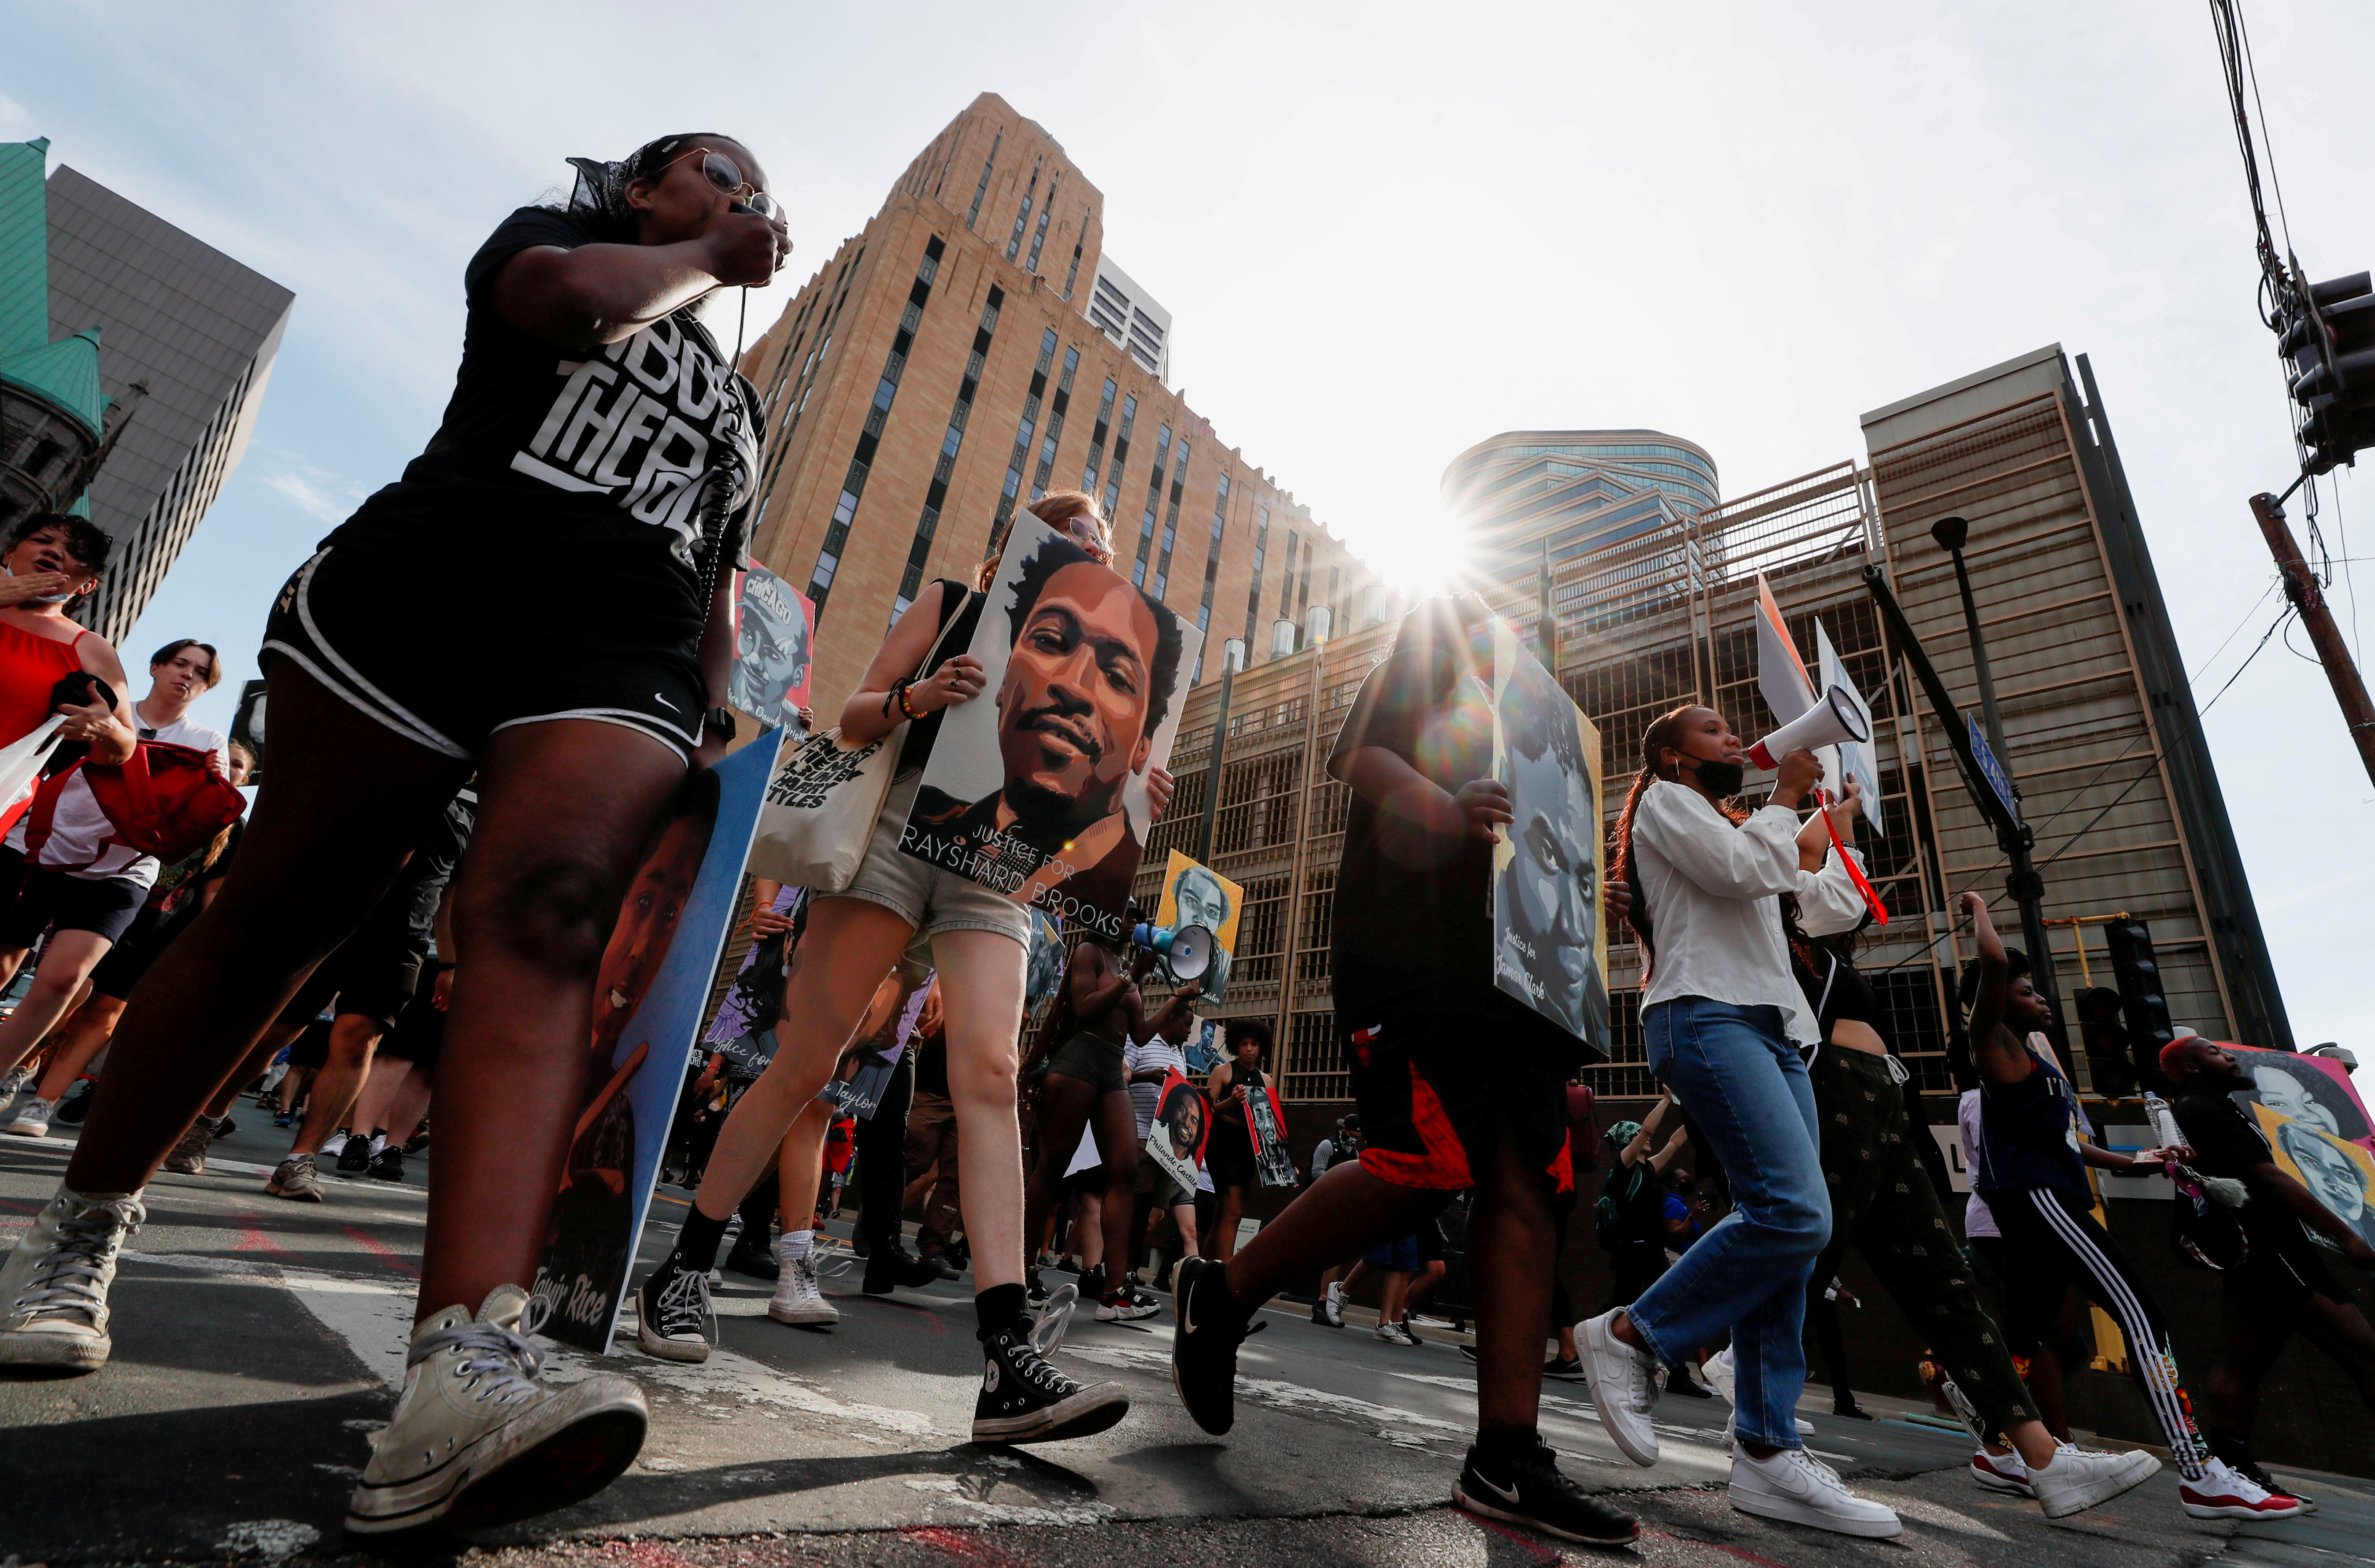 Protesters march during a brief rally after the sentencing of Derek Chauvin, the former Minneapolis policeman found guilty of killing George Floyd, a Black man, in Minneapolis, Minnesota, U.S. June 25, 2021. REUTERS/Eric Miller/File Photo